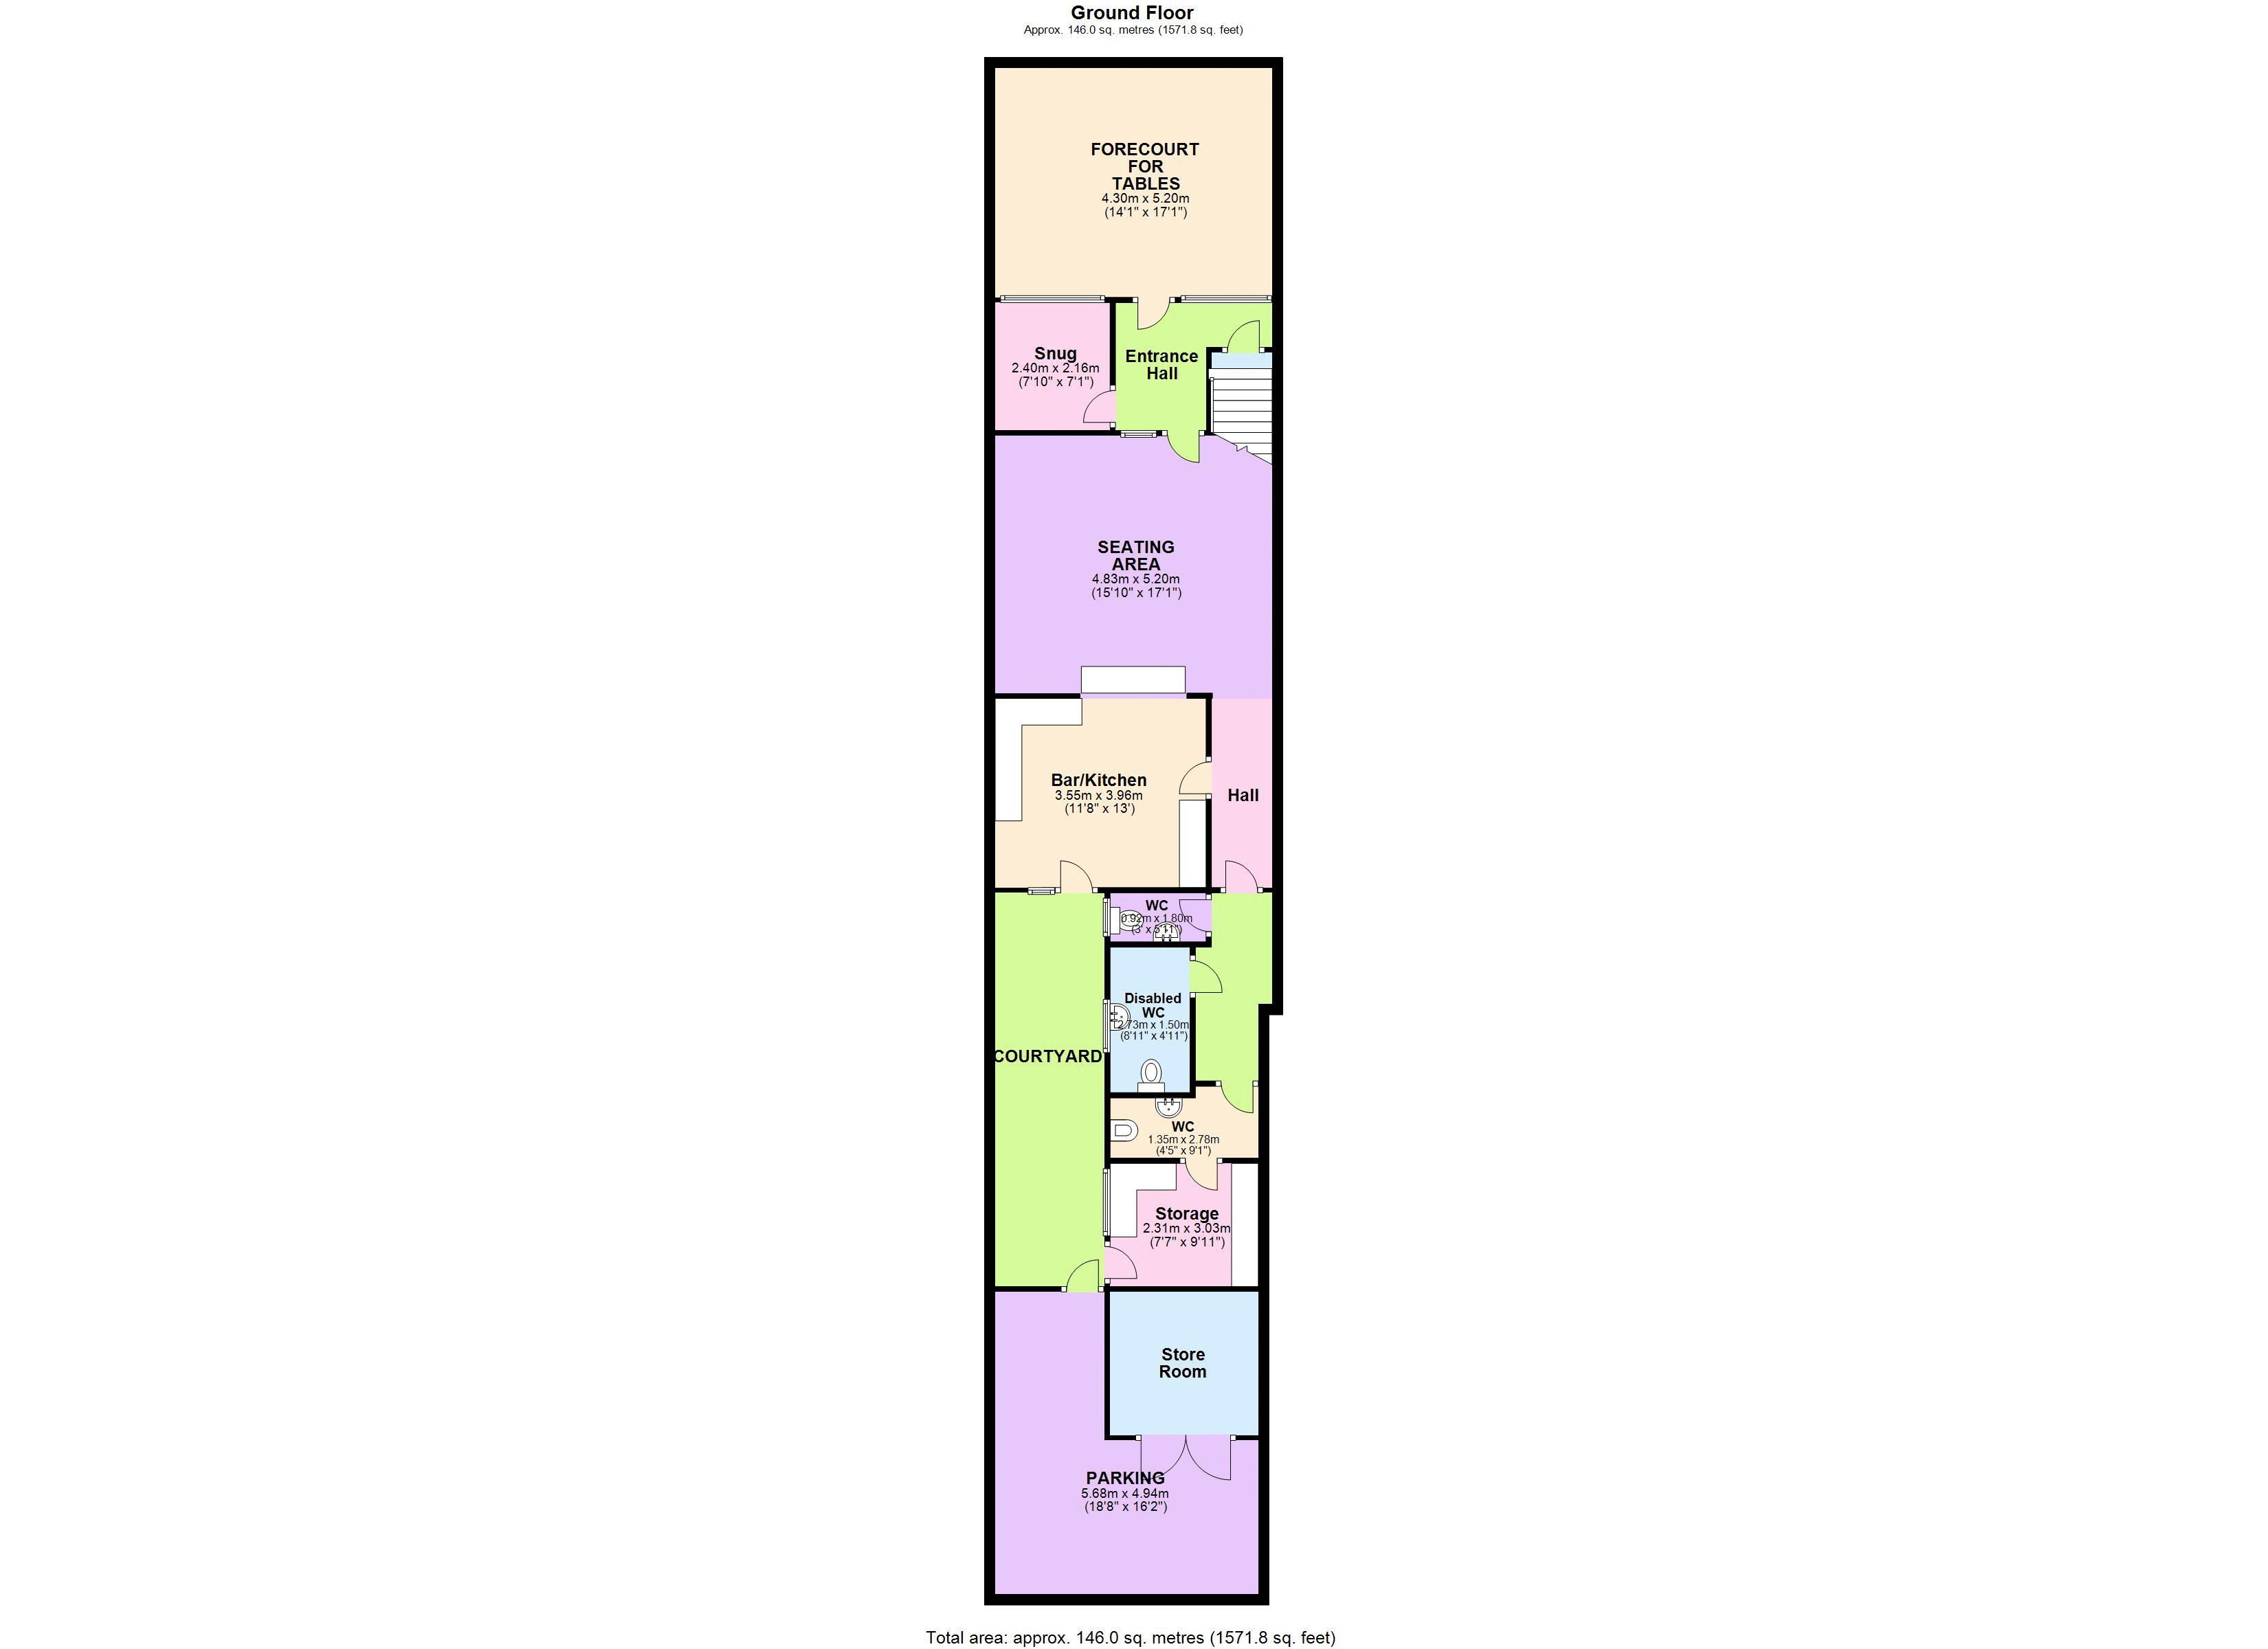 Ground Floor Floor Plan